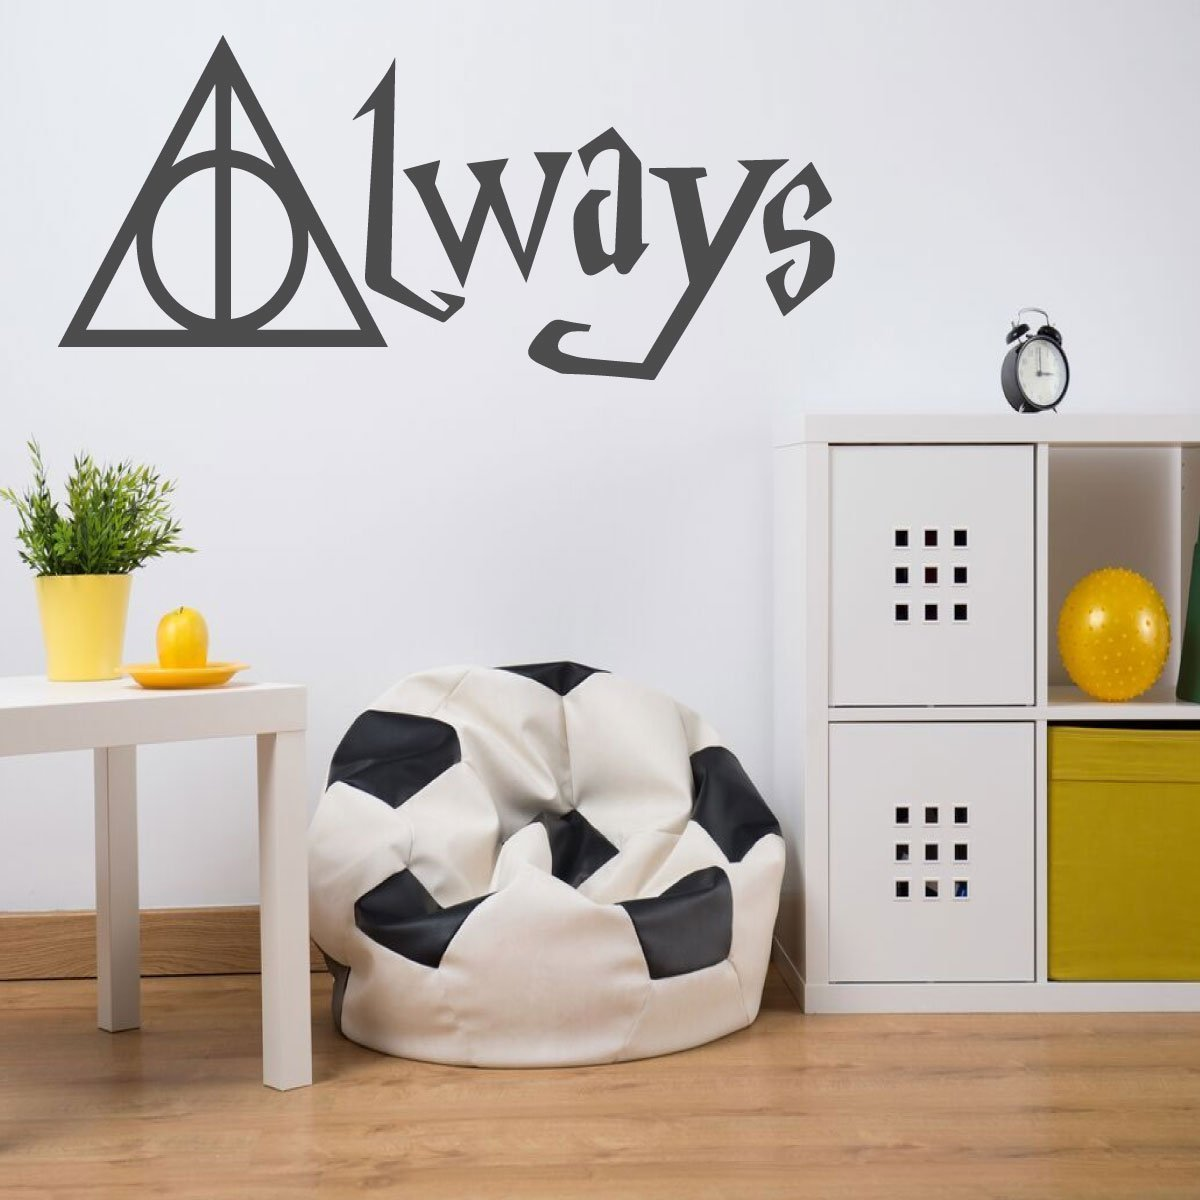 Harry Potter Professor Severus Snape Vinyl Decor Wall Decal